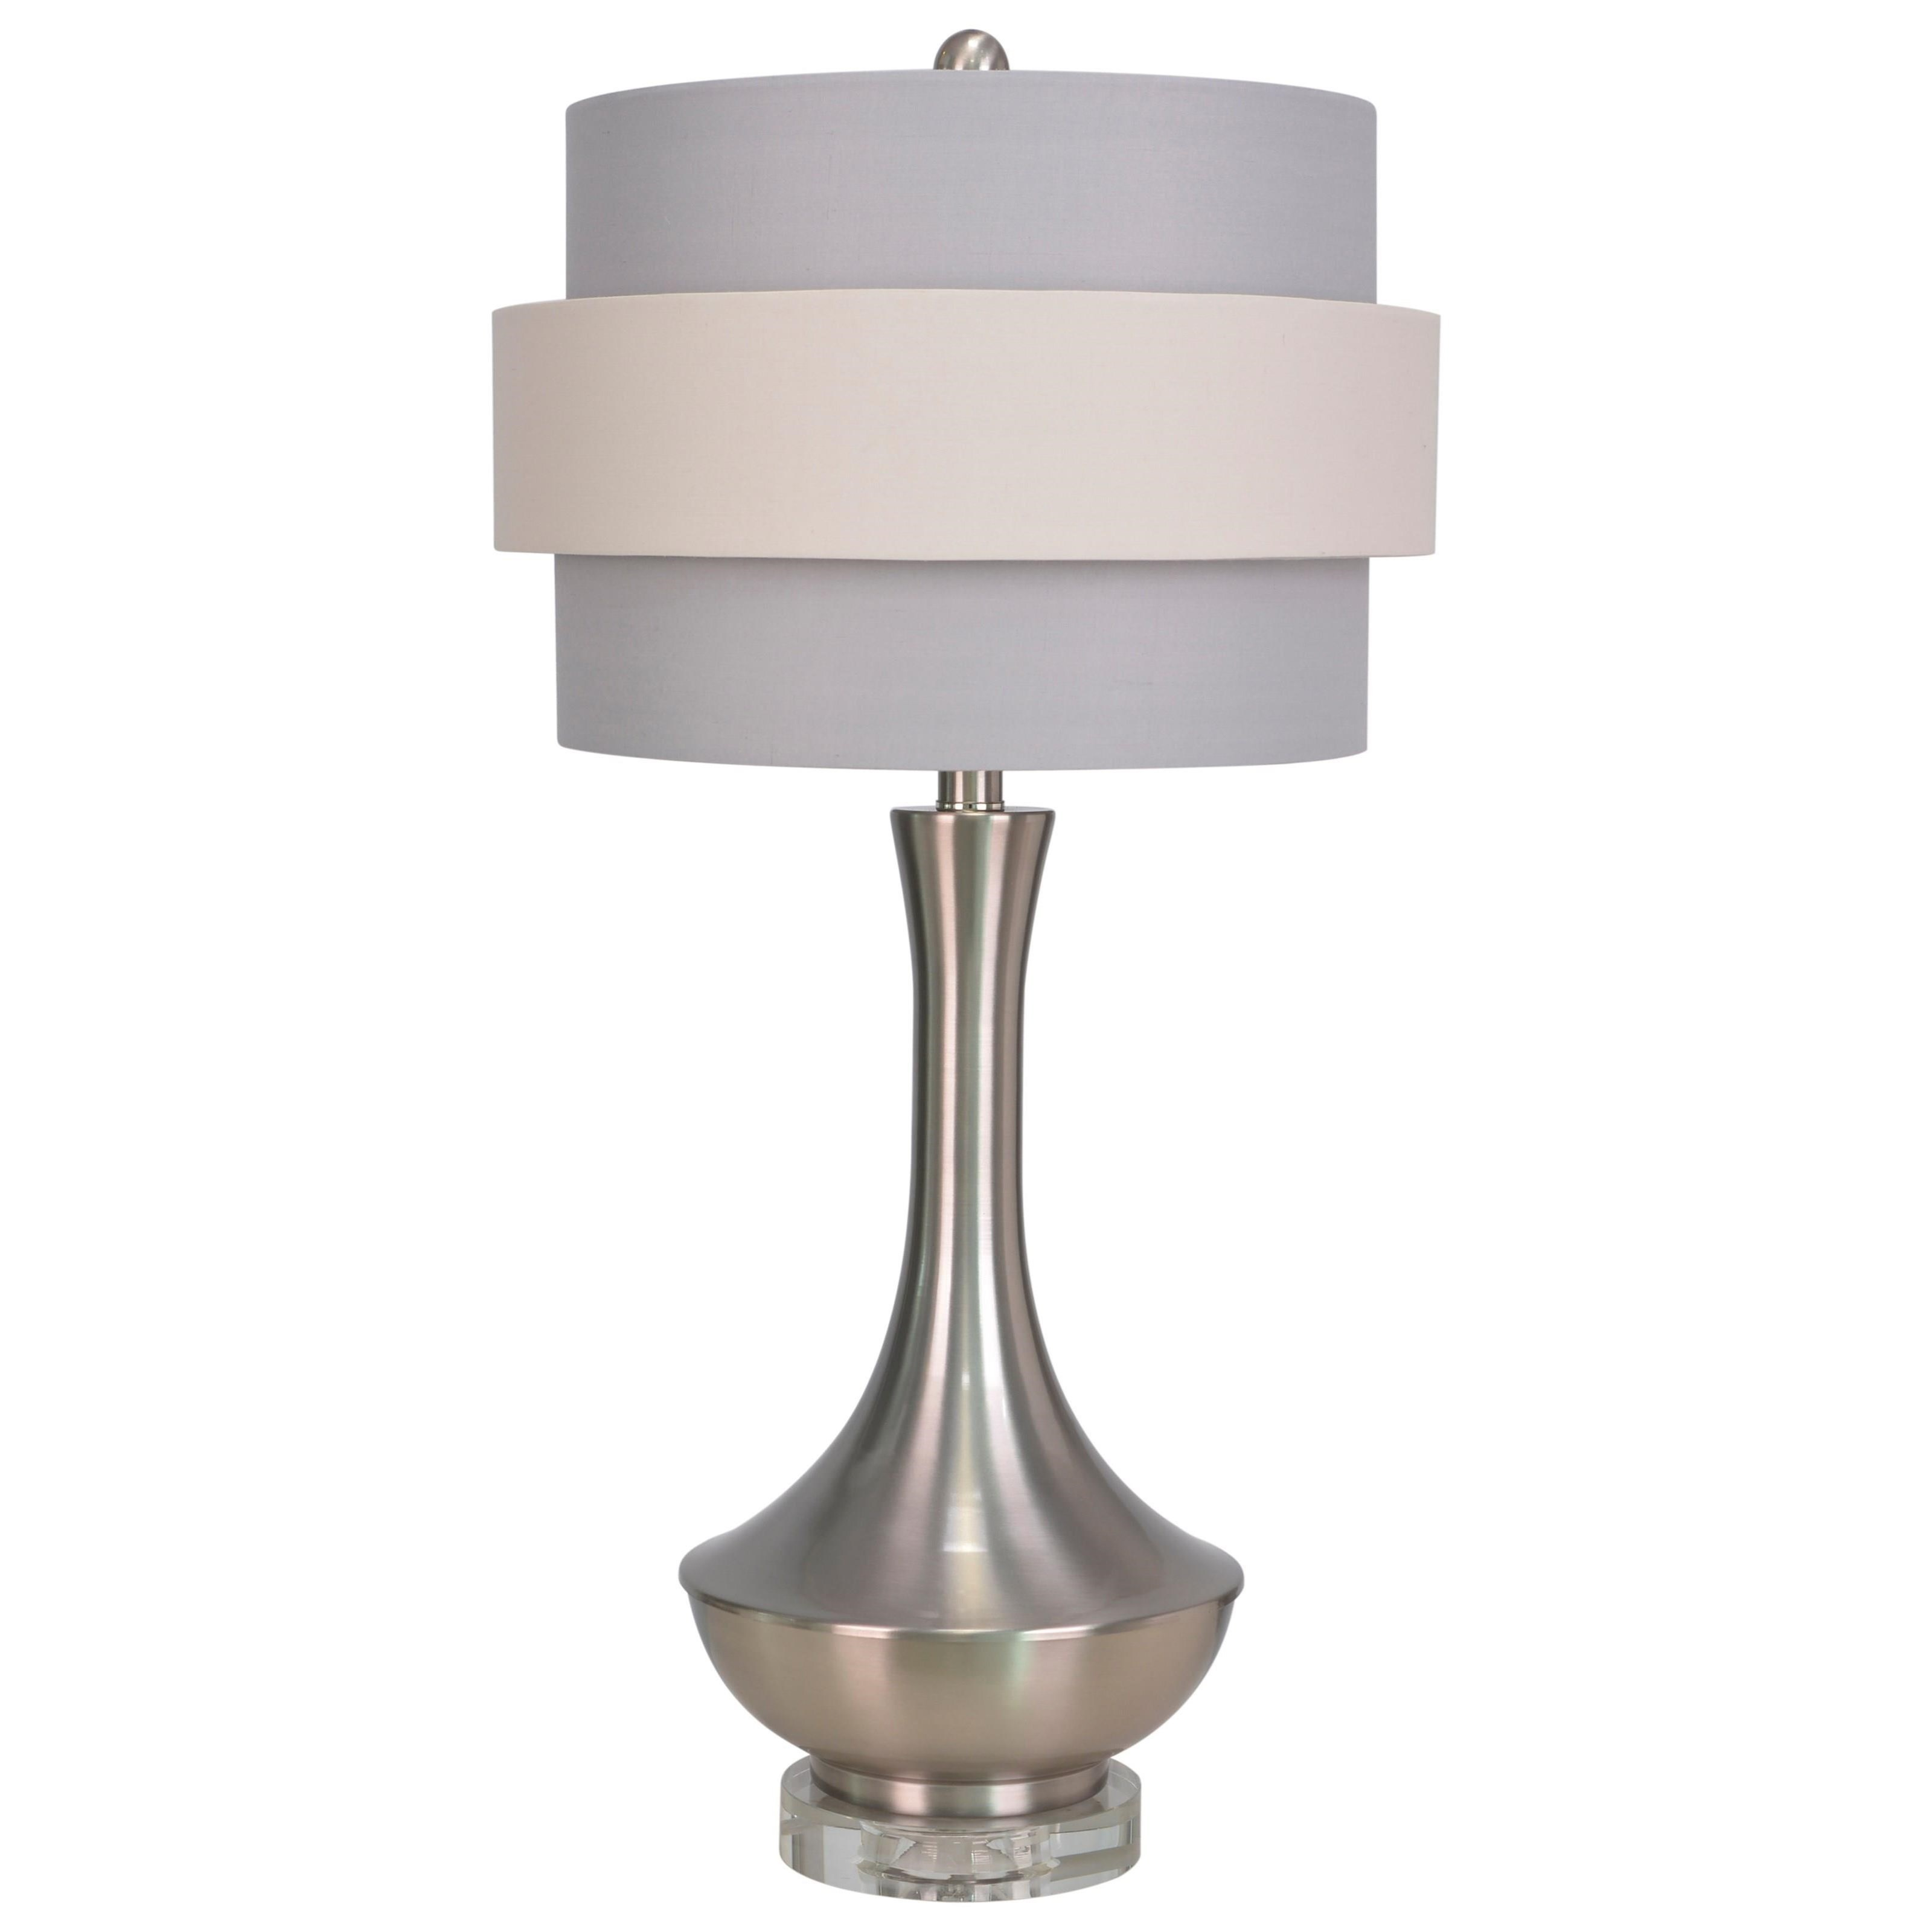 Lamps per se lamps metal table lamp furniture fair north lamps per se lamps metal table lamp item number lps 224 geotapseo Image collections